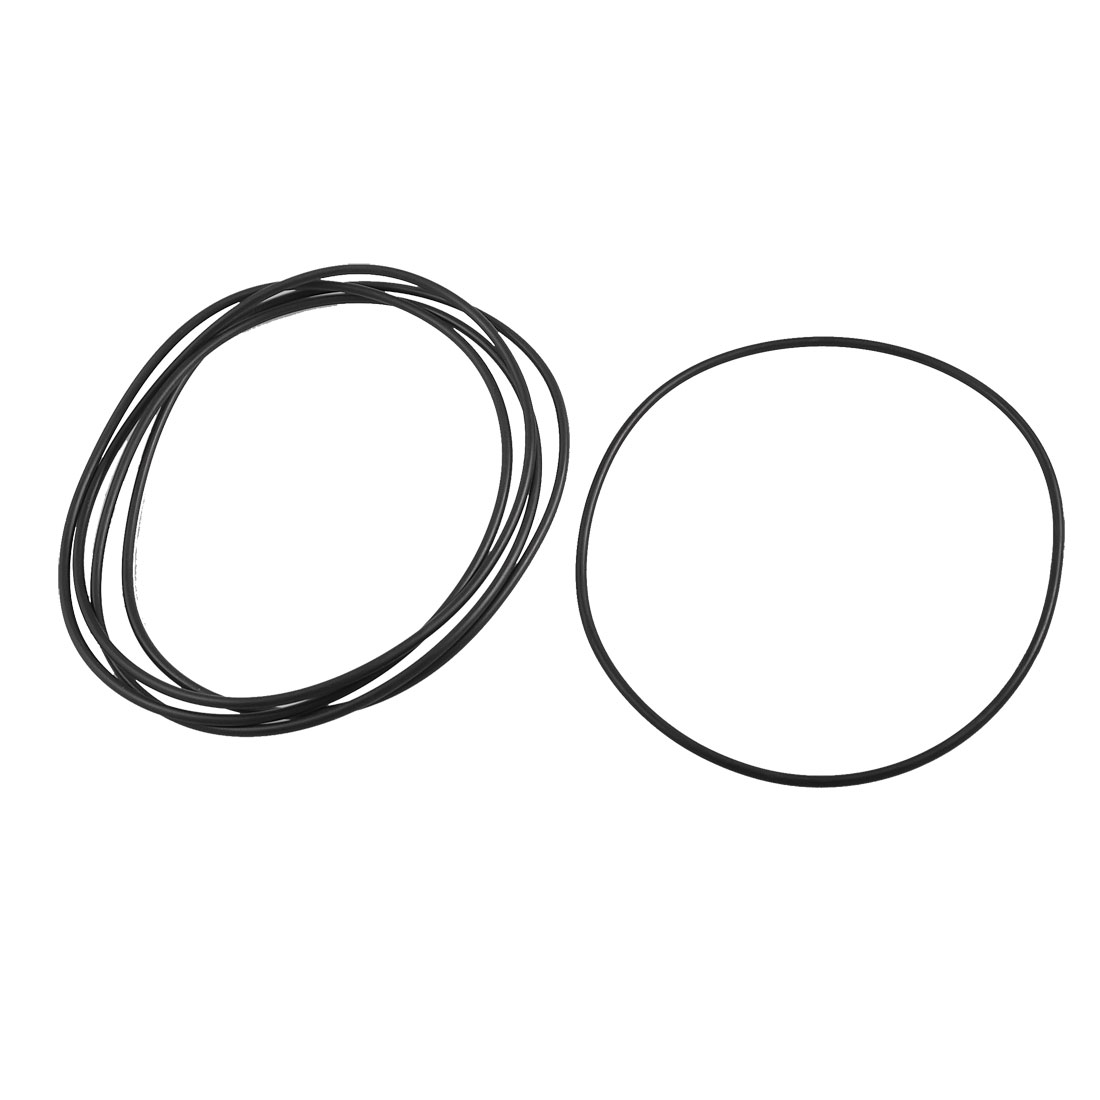 5 Pcs 125mm x 119mm x 3.1mm Rubber Sealing Oil Filter O Rings Gaskets Black